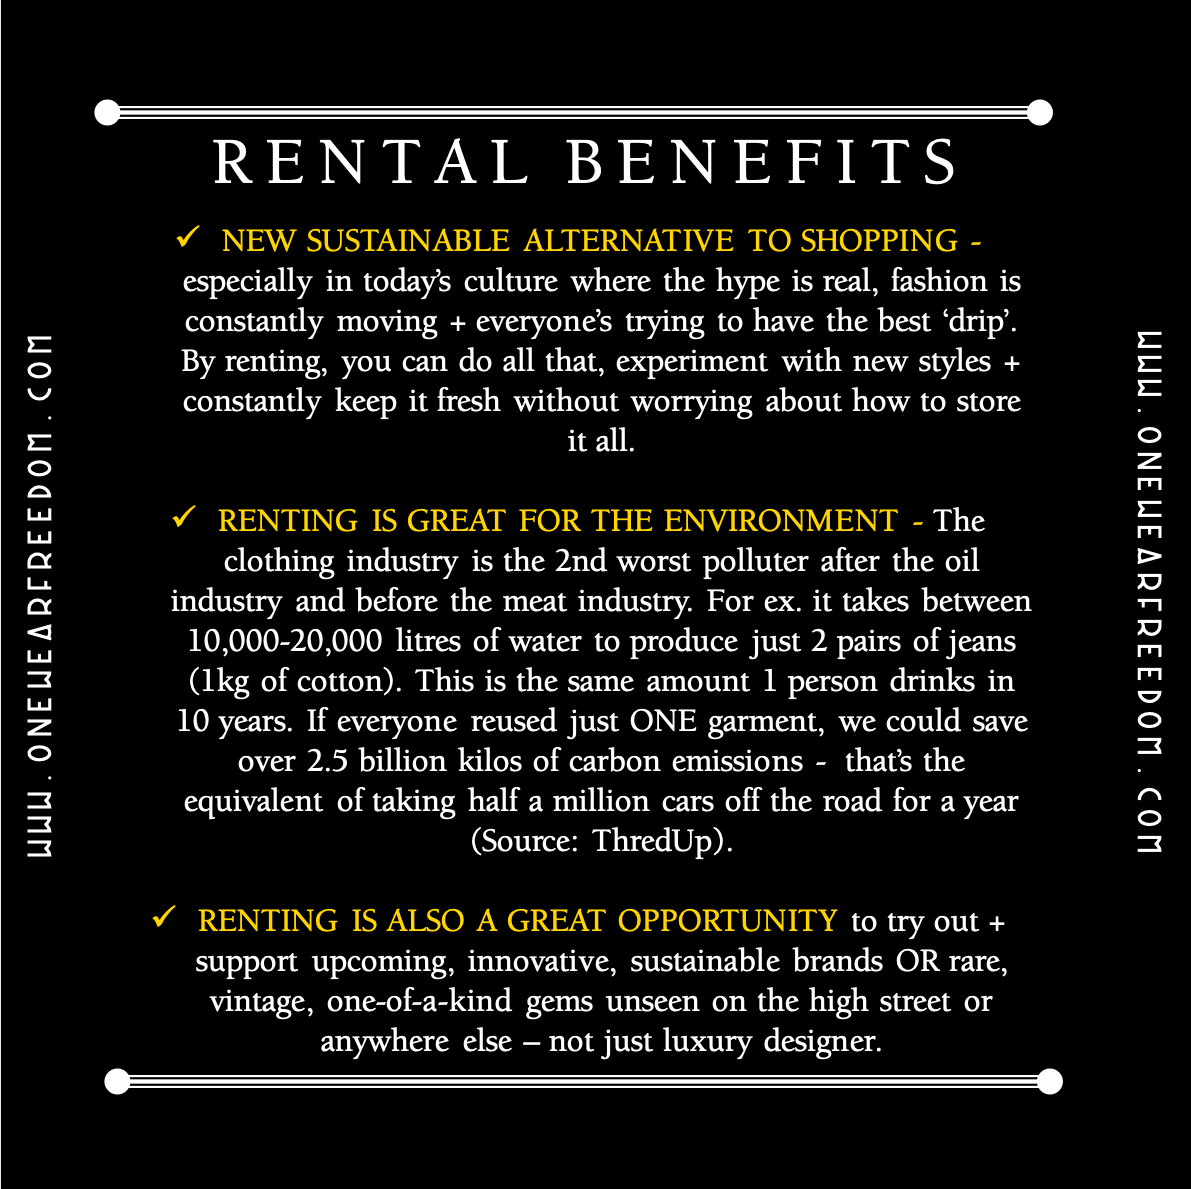 Rental Benefits: NEW SUSTAINABLE ALTERNATIVE TO SHOPPING - especially in today's culture where the hype is real, fashion is constantly moving + everyone's trying to have the best 'drip'. By renting, you can do all that, experiment with new styles + constantly keep it fresh without worrying about how to store it all.  RENTING IS GREAT FOR THE ENVIRONMENT - The clothing industry is the 2nd worst polluter after the oil industry and before the meat industry. For ex. it takes between 10,000-20,000 litres of water to produce just 2 pairs of jeans (1kg of cotton). This is the same amount 1 person drinks in 10 years. If everyone reused just ONE garment, we could save over 2.5 billion kilos of carbon emissions -  that's the equivalent of taking half a million cars off the road for a year (Source: ThredUp).  RENTING IS ALSO A GREAT OPPORTUNITY to try out + support upcoming, innovative, sustainable brands OR rare, vintage, one-of-a-kind gems unseen on the high street or anywhere else – not just luxury designer.